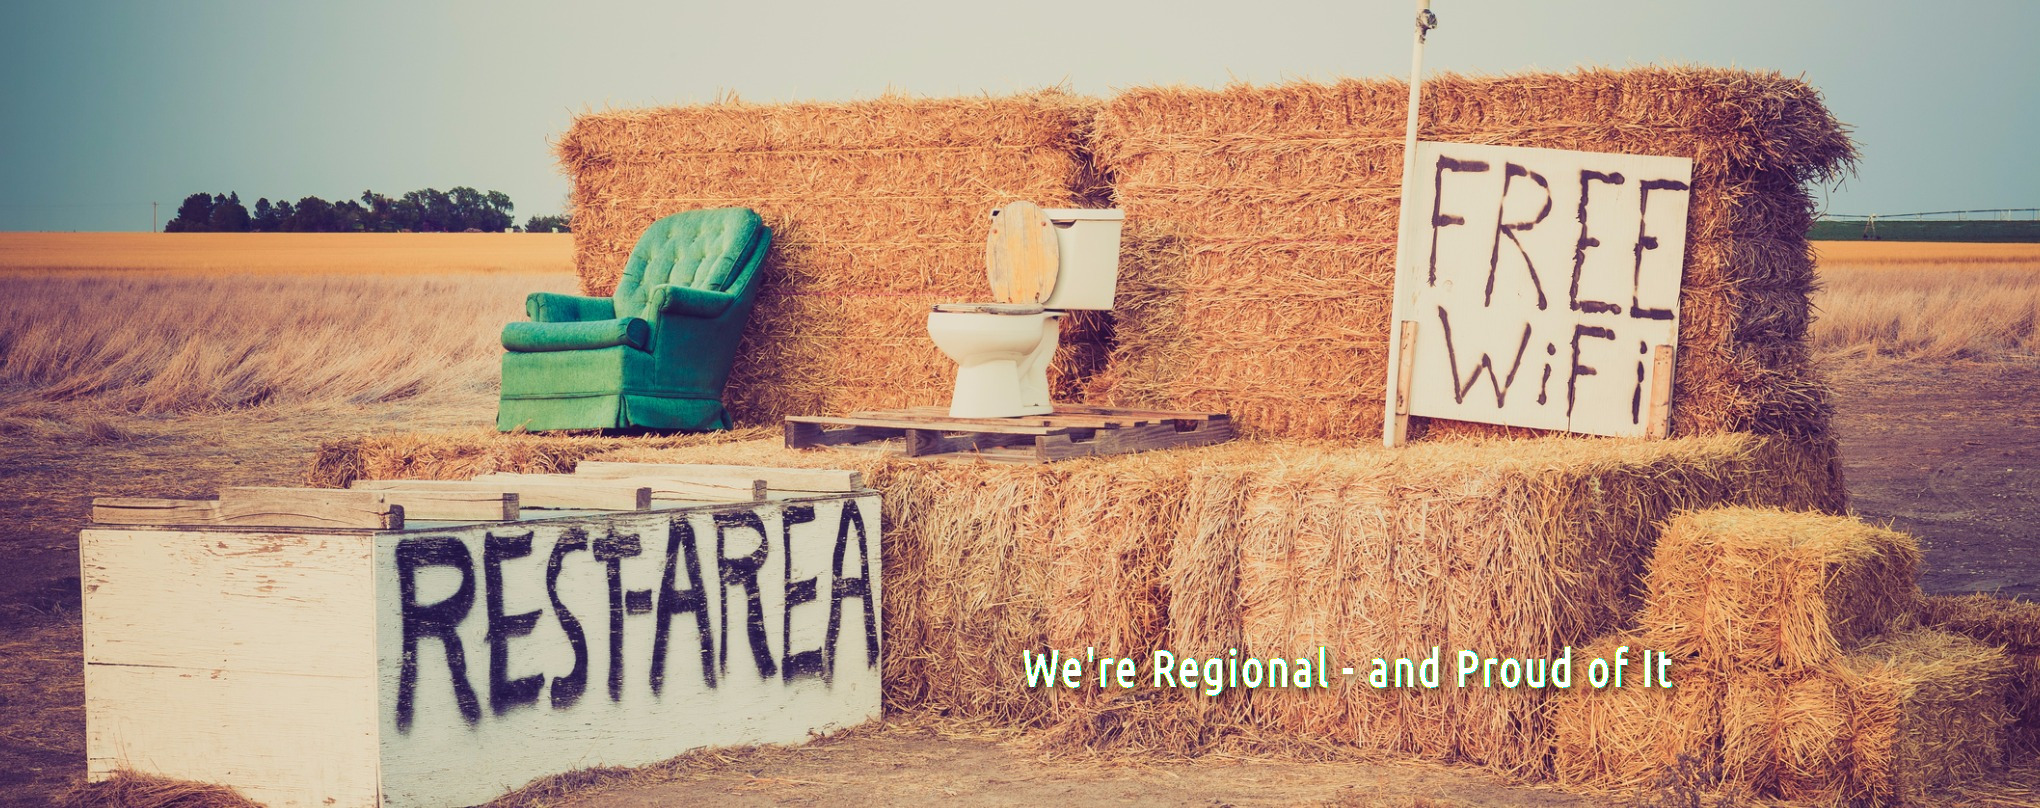 <br><b>We're Regional - and proud of it.</b>